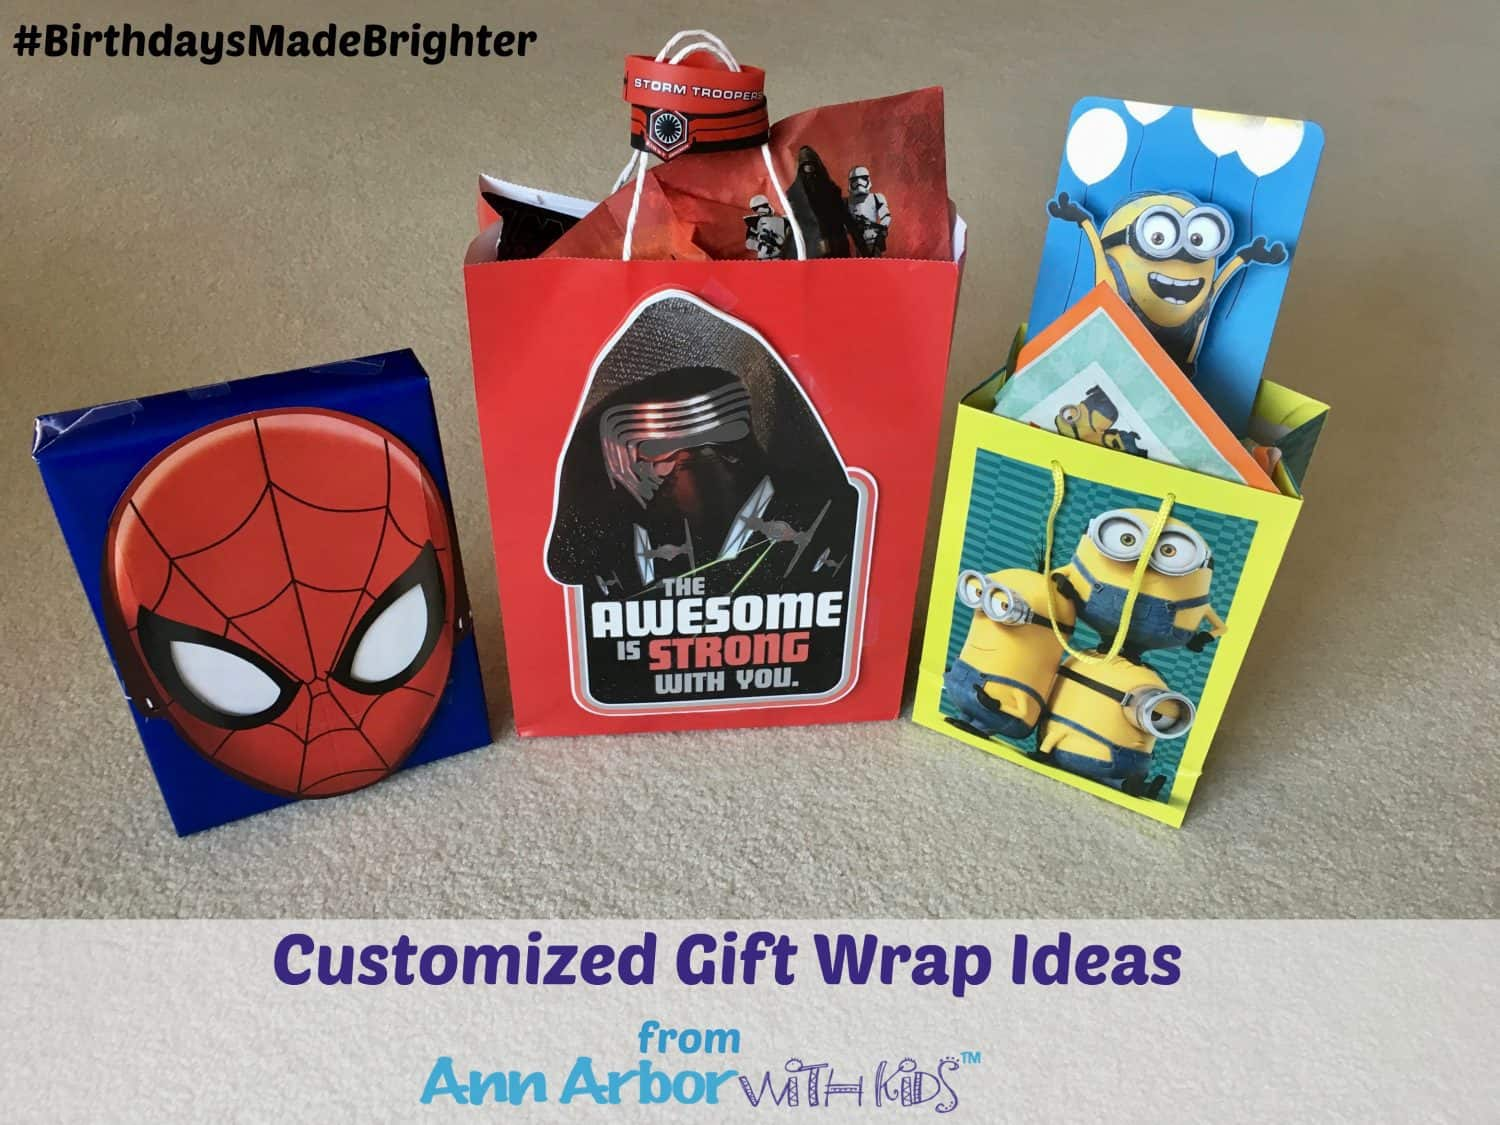 Birthdays Made Brighter - Customized Gift Wrap Ideas